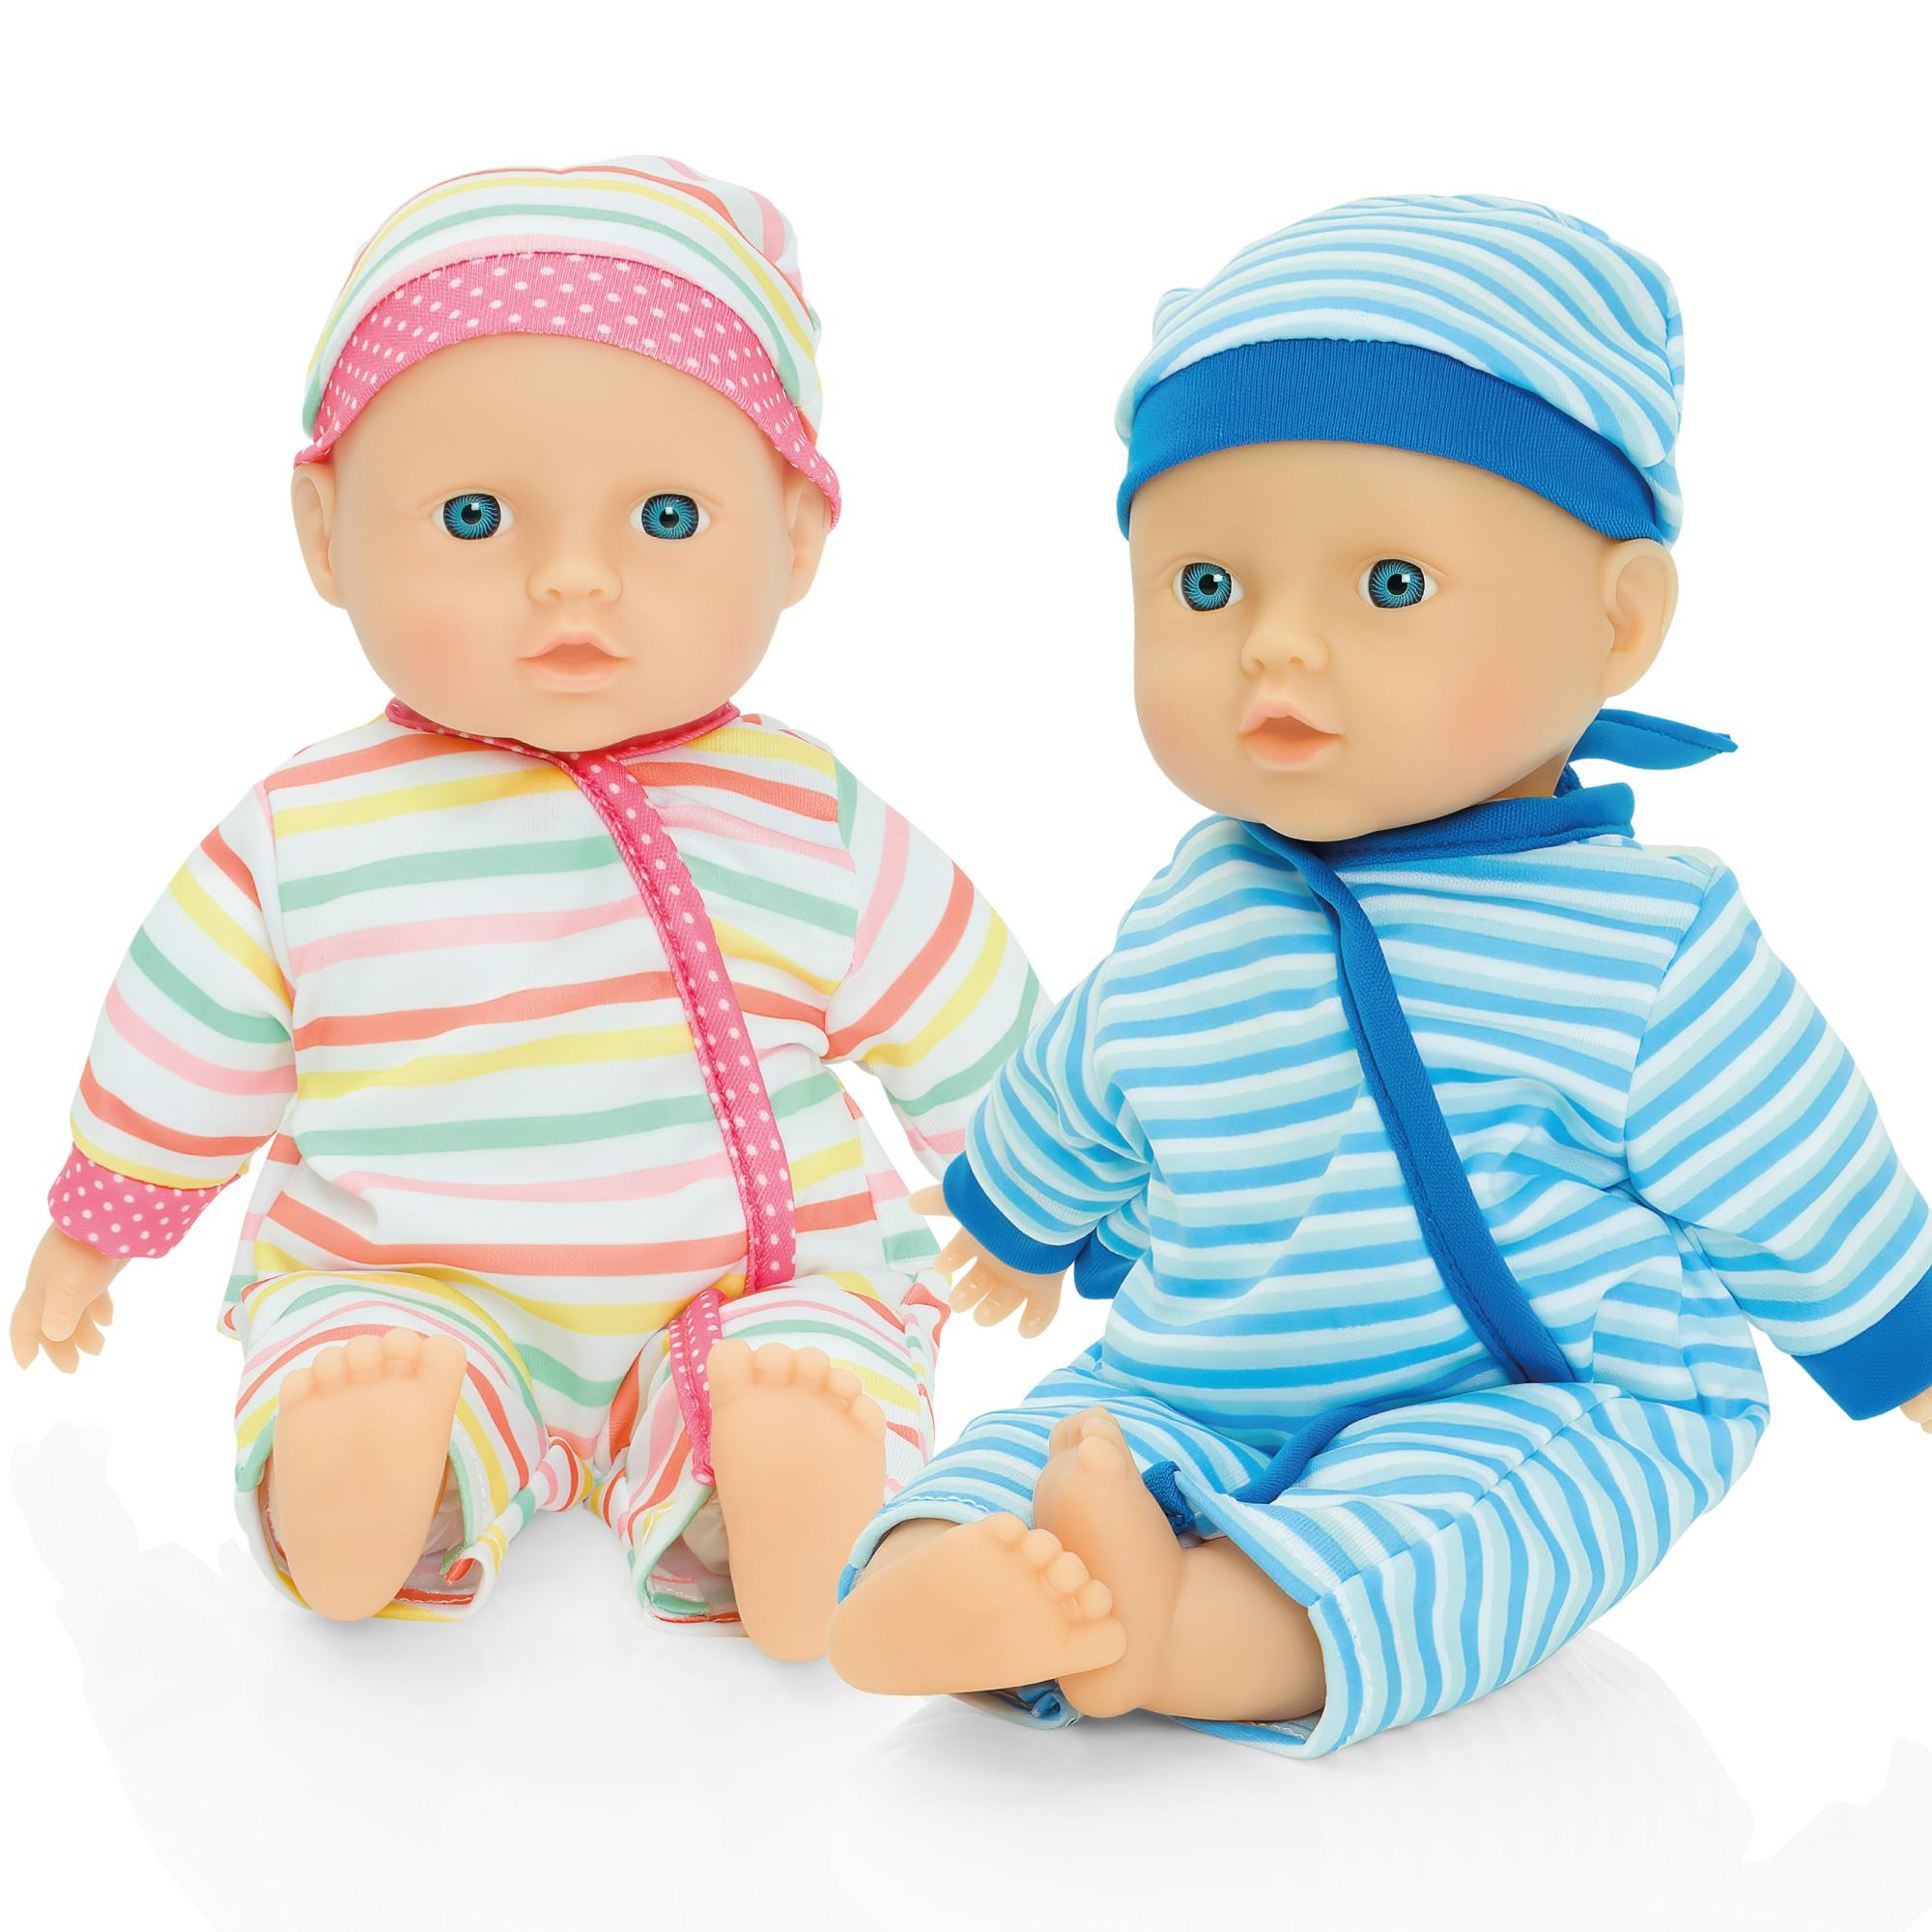 Molly Dolly Twin Baby Dolls 30cm Soft Bodied Vinyl Dressed ...